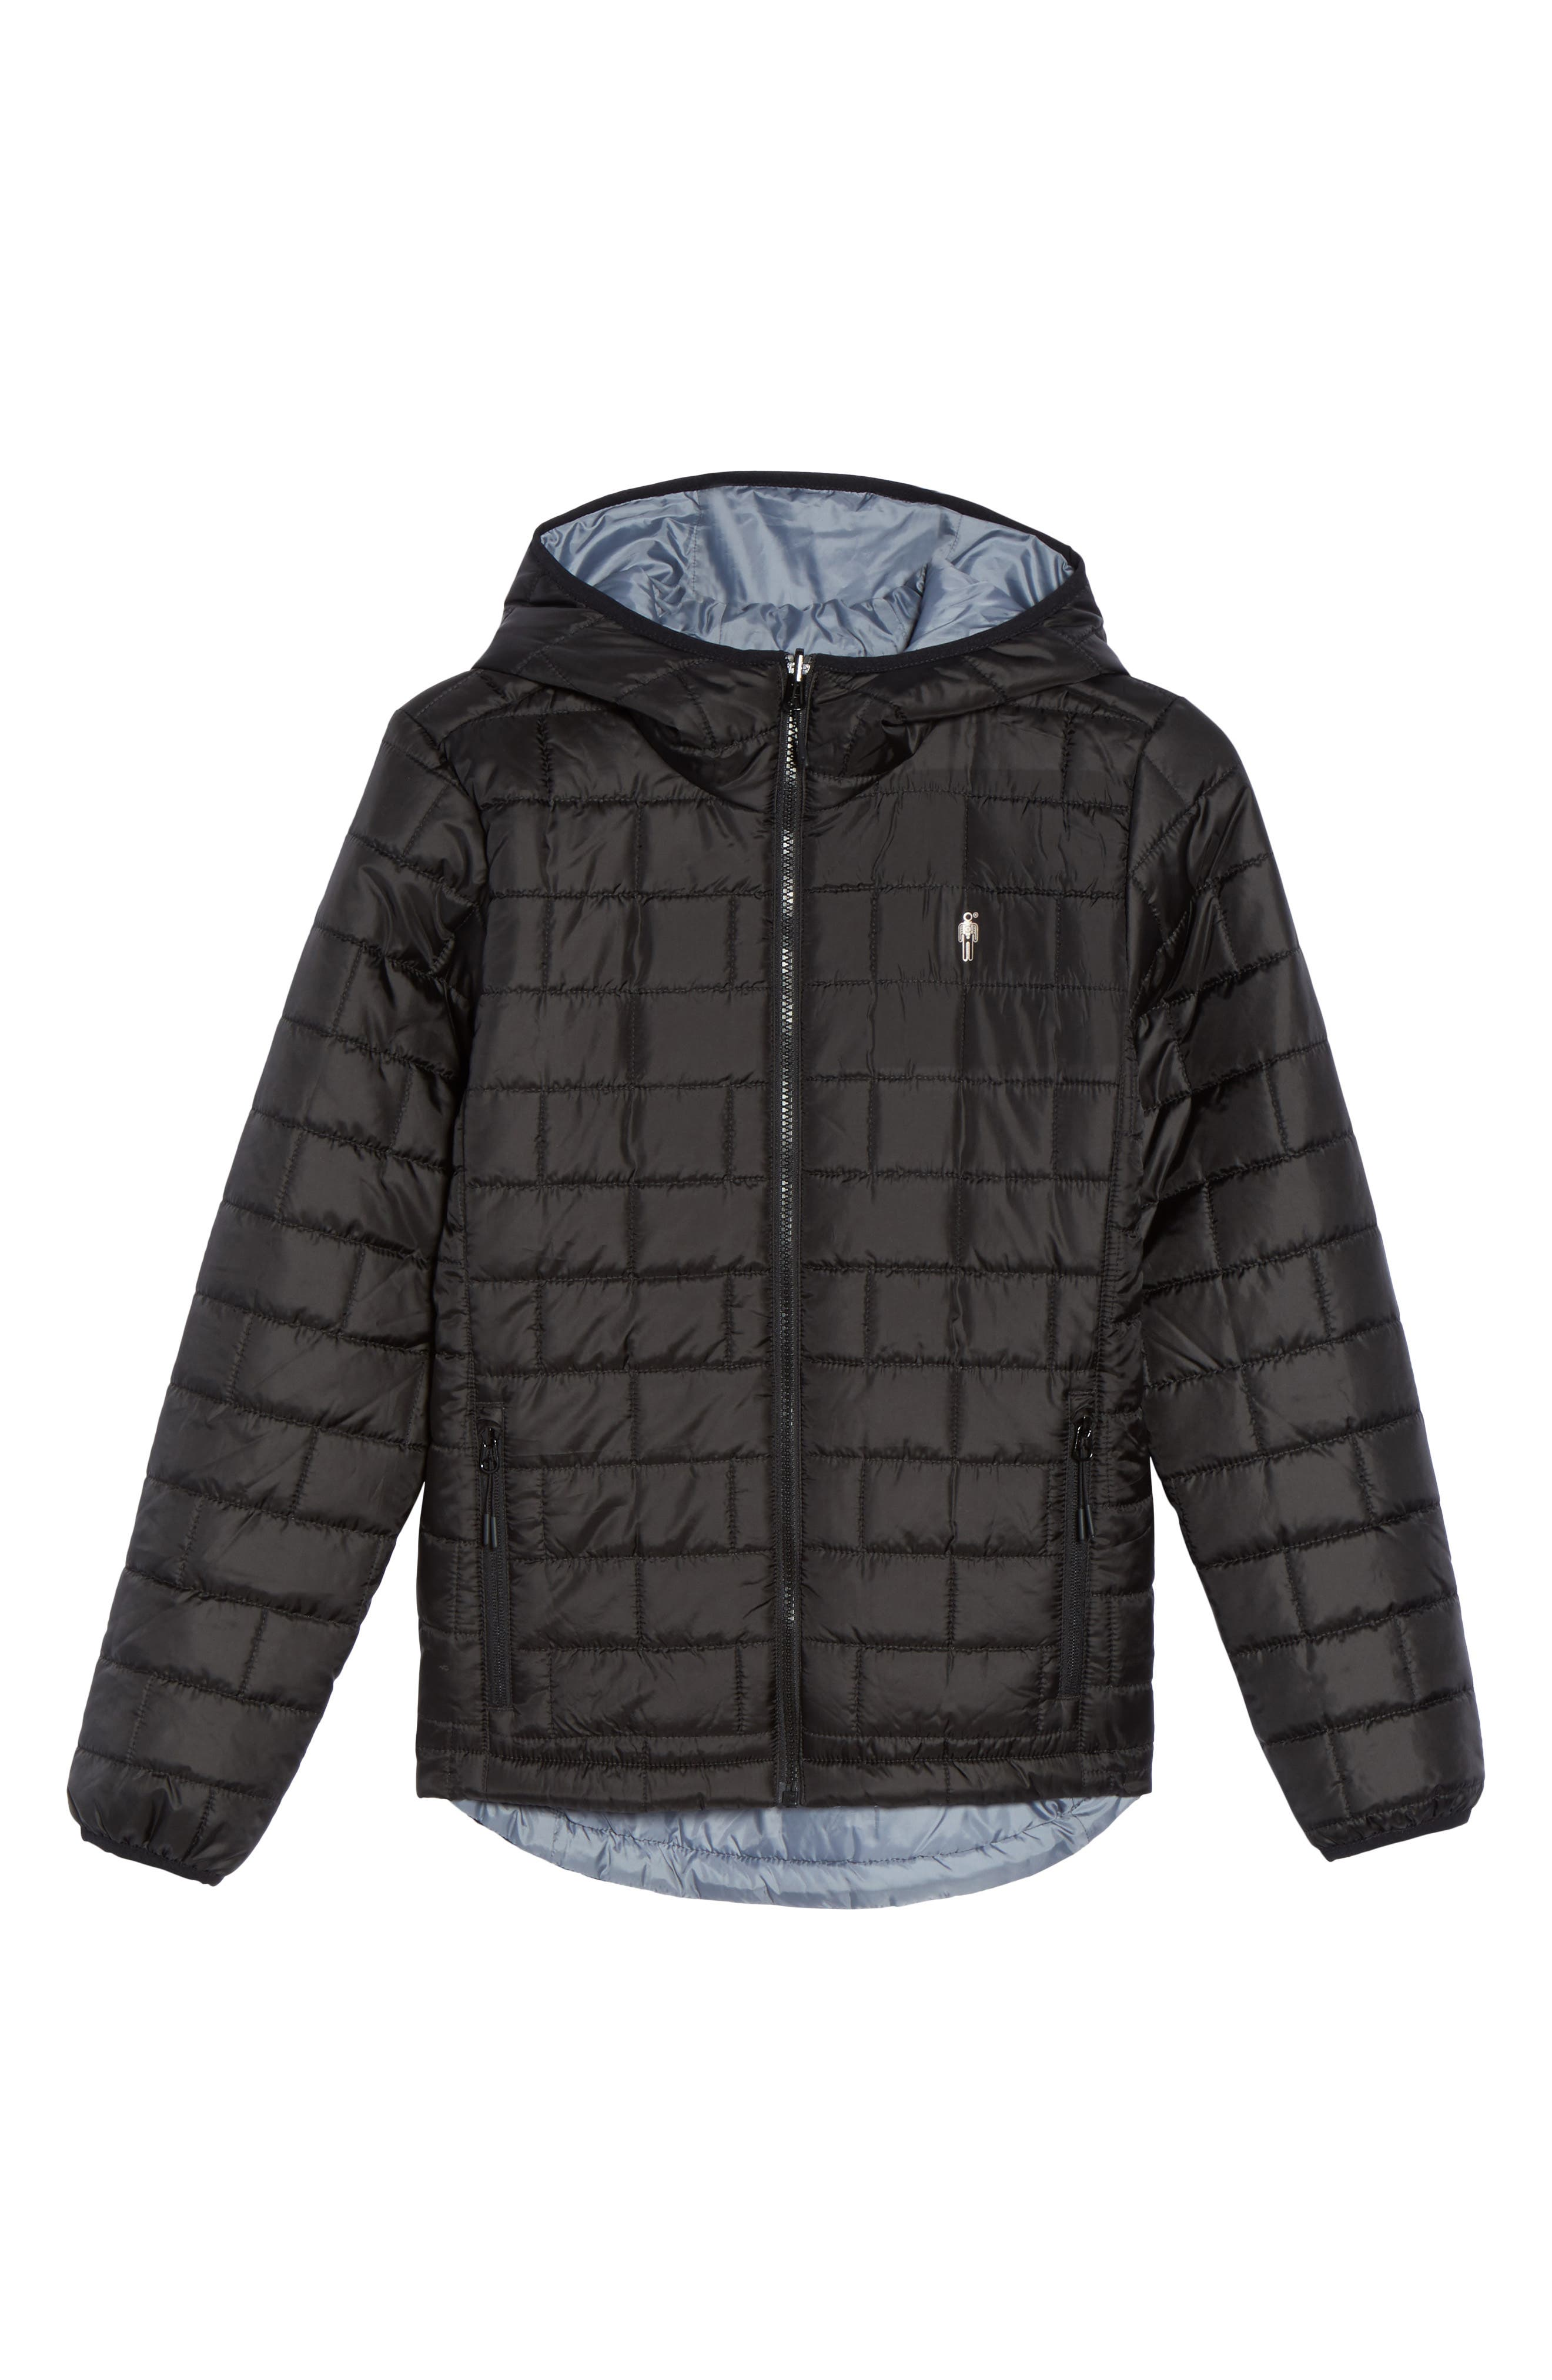 Highland Reversible Water-Resistant & Windproof Quilted Puffer Jacket,                             Alternate thumbnail 7, color,                             Black/ Gunmetal